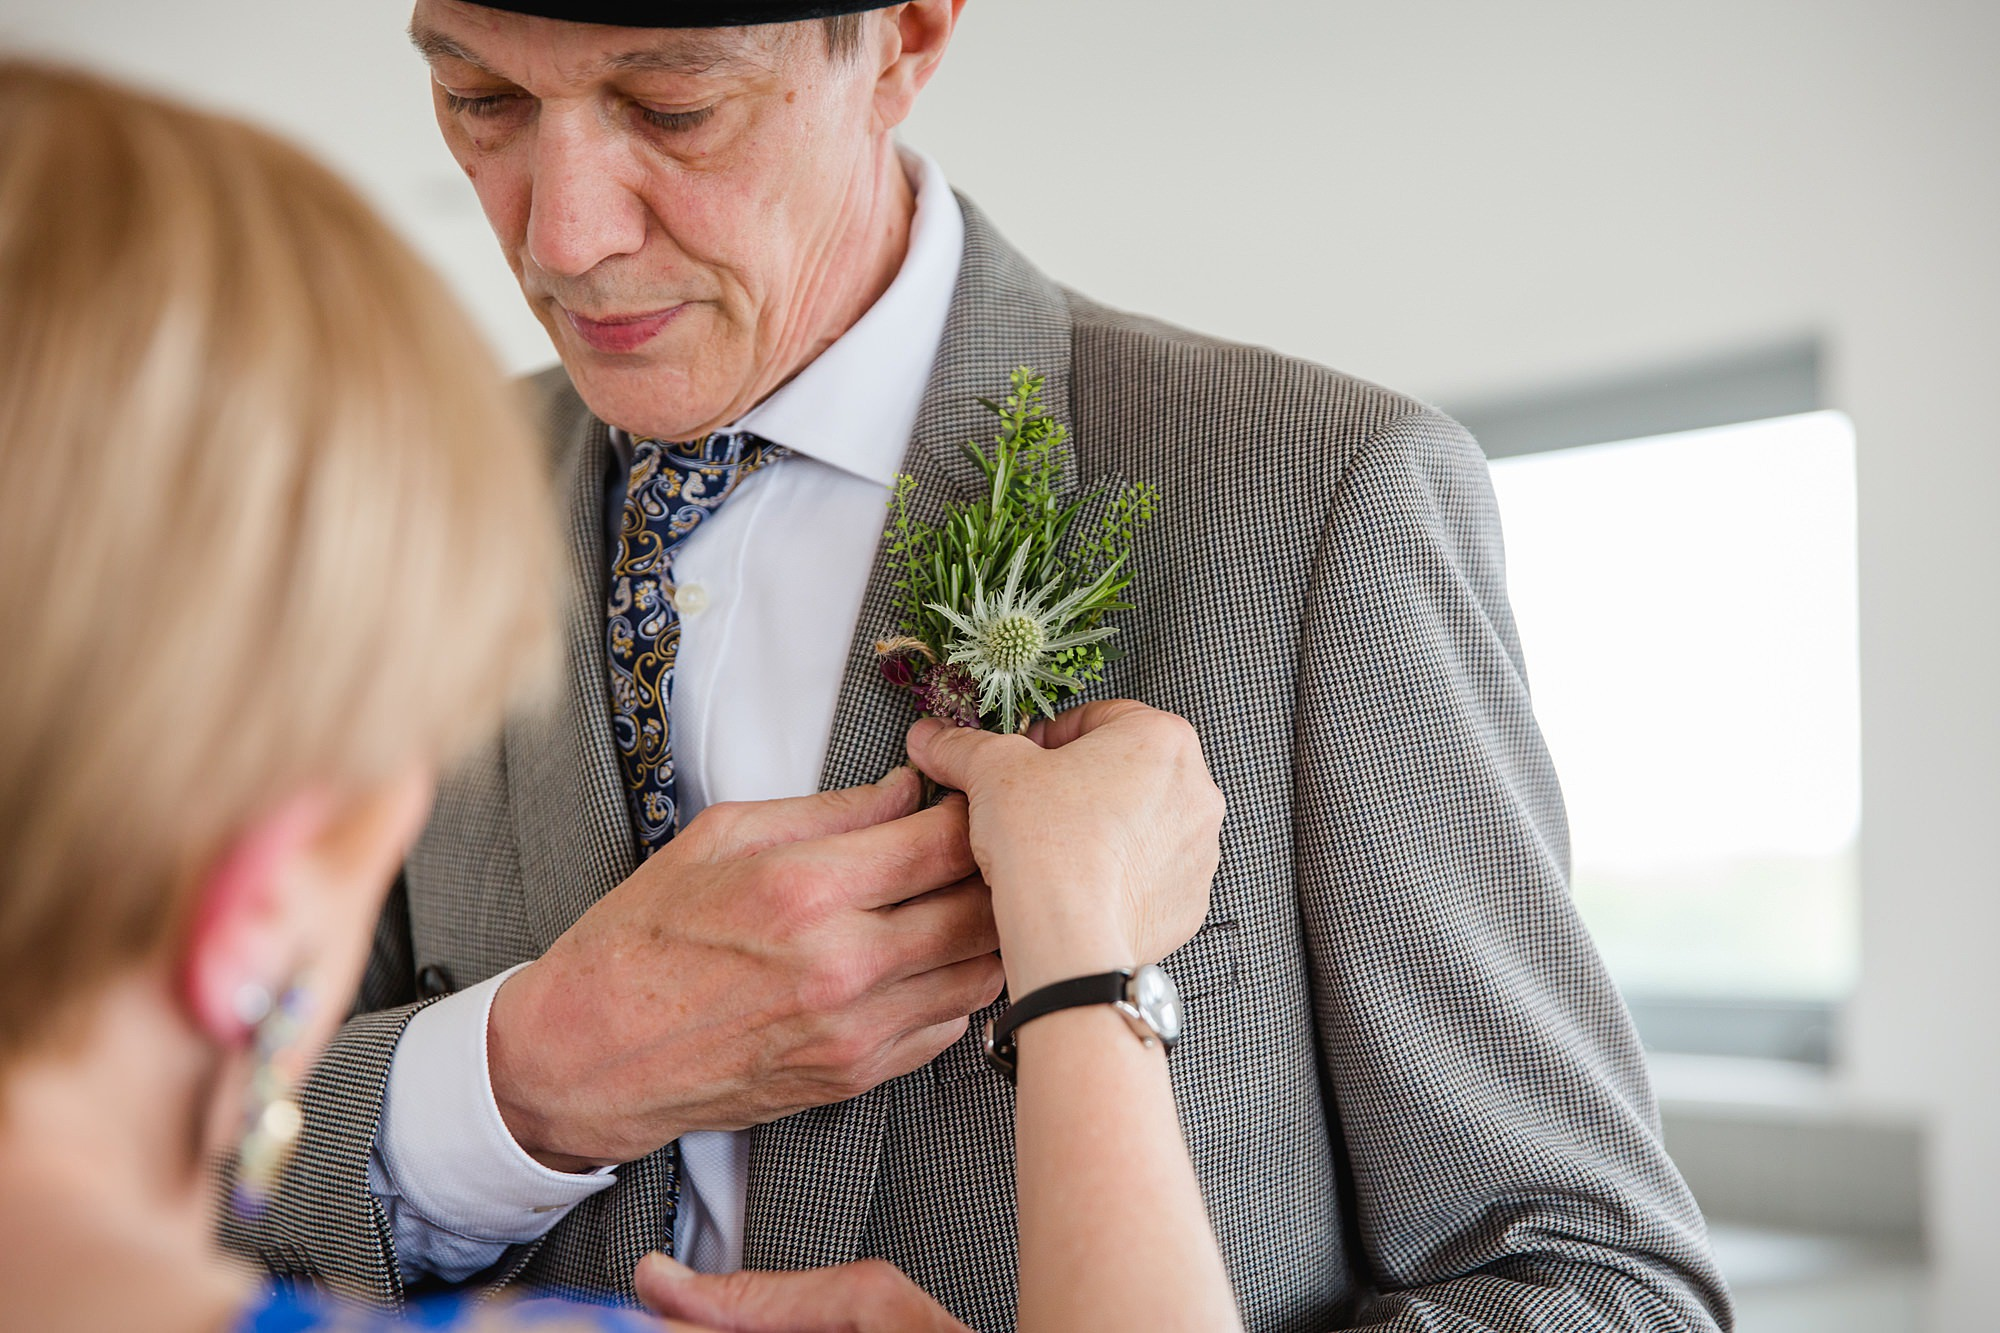 Brunel museum wedding father of bride has buttonhole applied